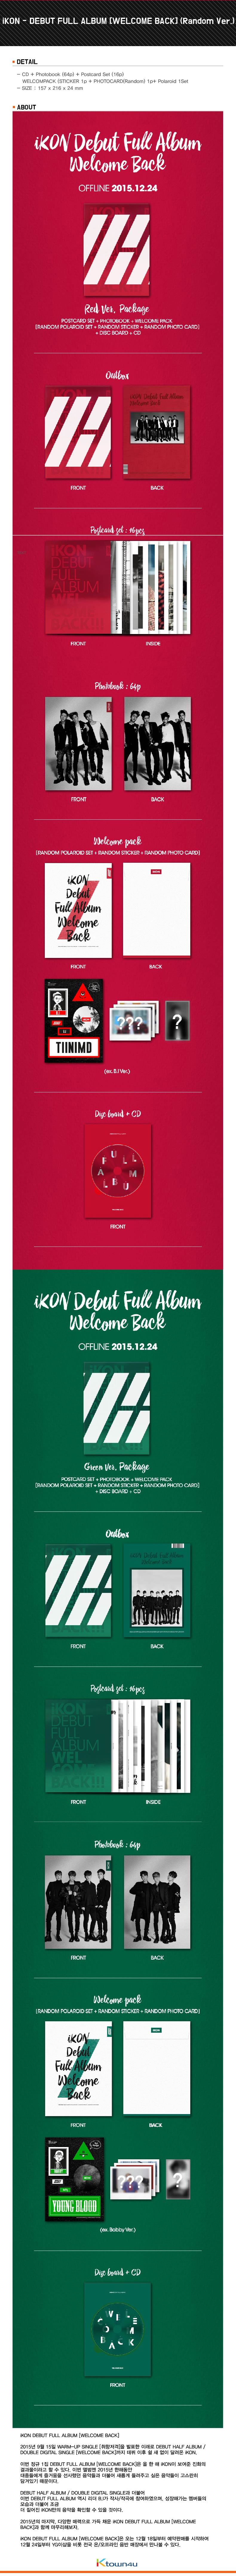 iKON - DEBUT FULL ALBUM [WELCOME BACK] (Random Ver.)